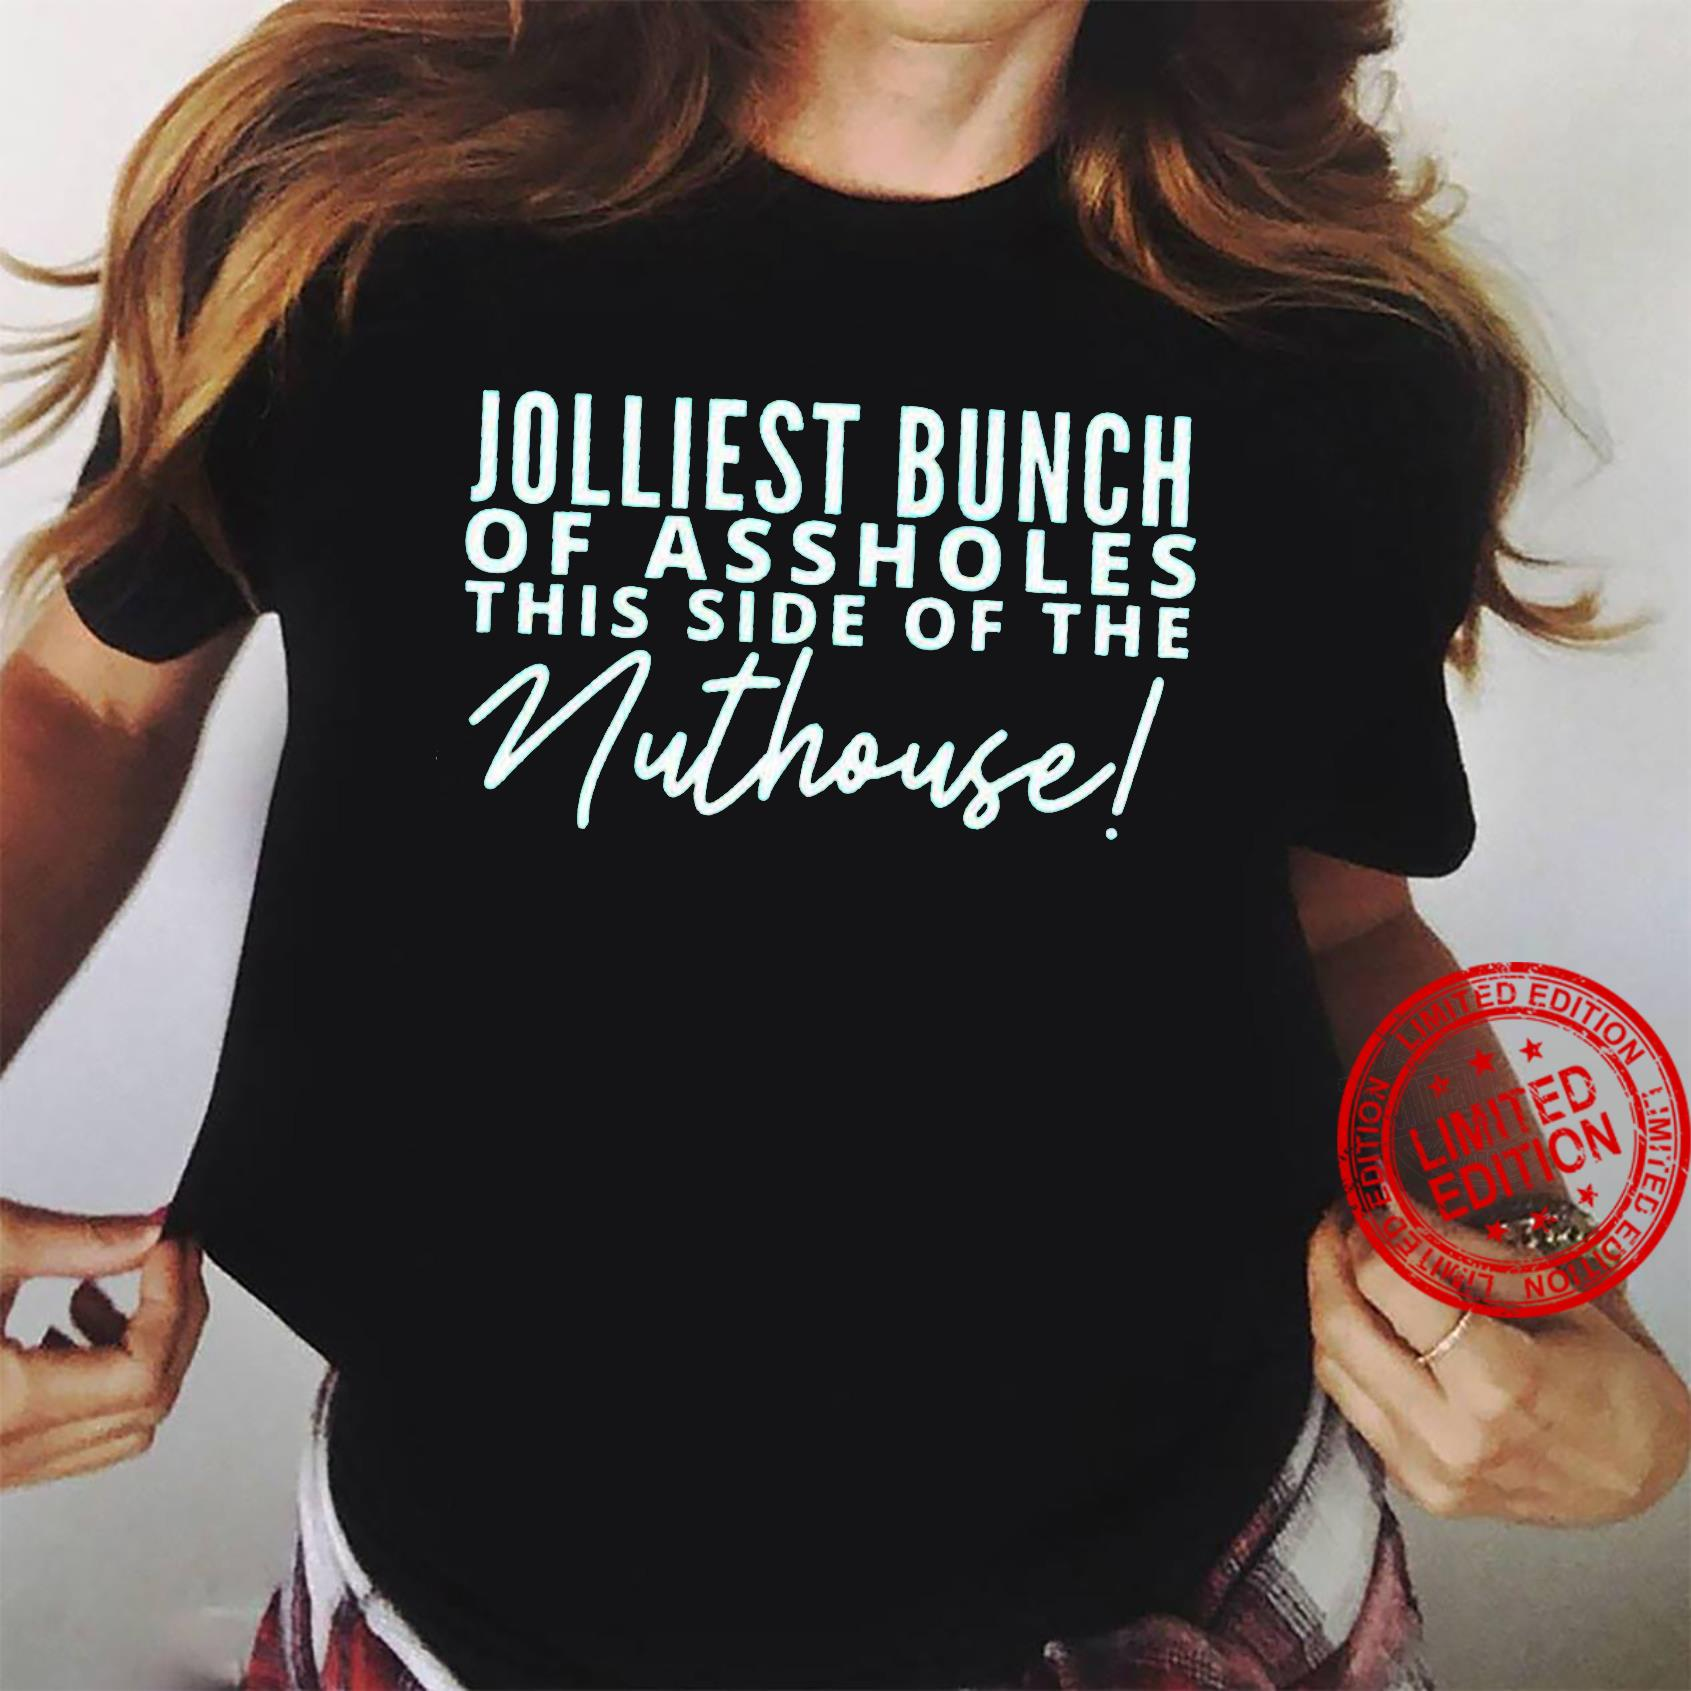 Jolliest Bunch Of Assholes This Side Of The Nuthouse Shirt ladies tee